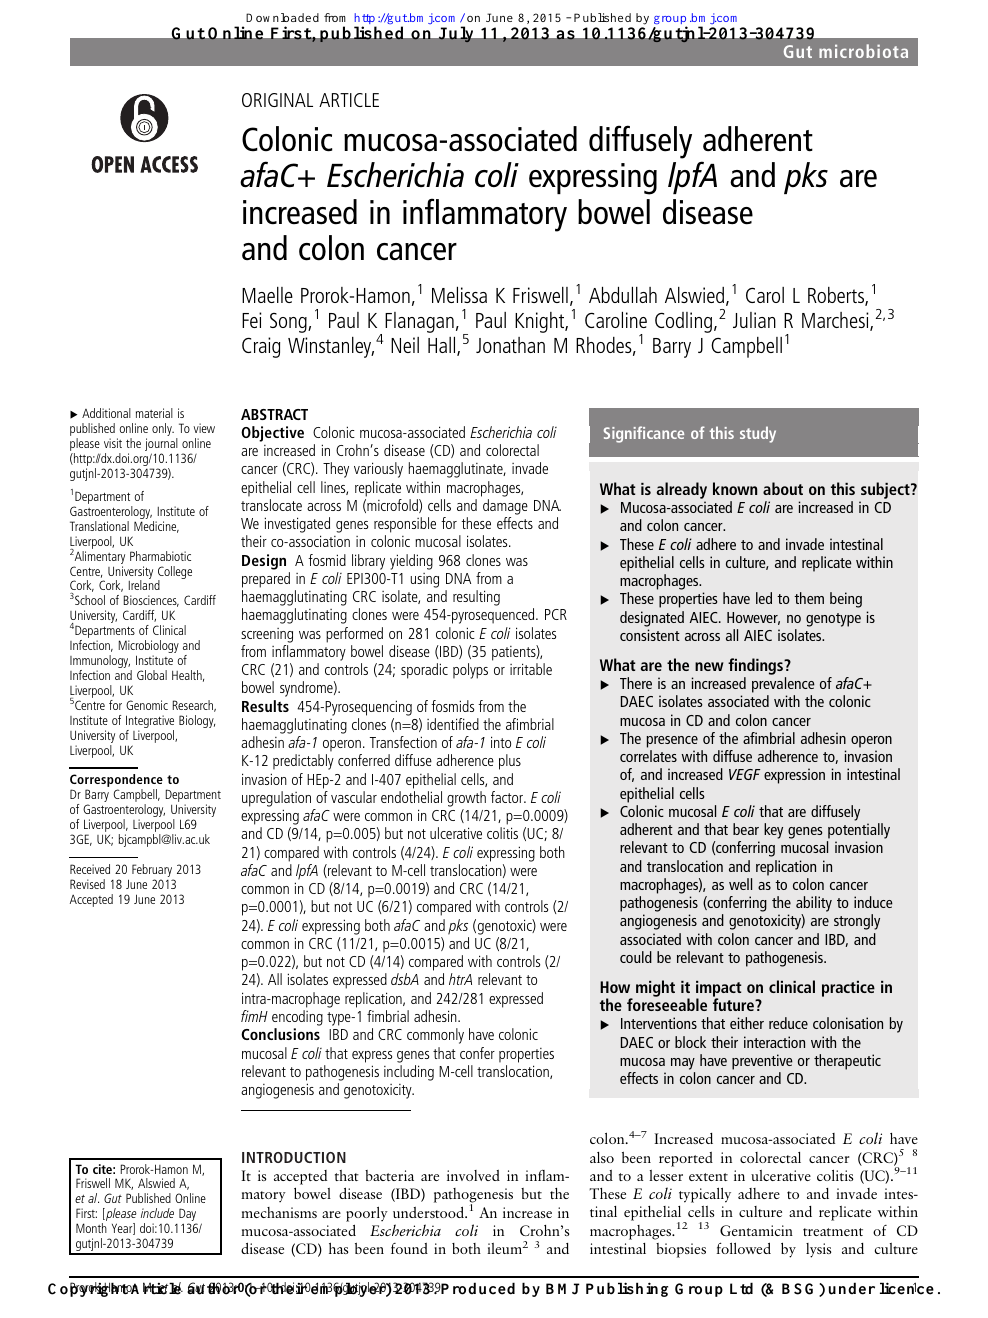 Colonic Mucosa Associated Diffusely Adherent Afac Escherichia Coli Expressing Lpfa And Pks Are Increased In Inflammatory Bowel Disease And Colon Cancer Topic Of Research Paper In Biological Sciences Download Scholarly Article Pdf